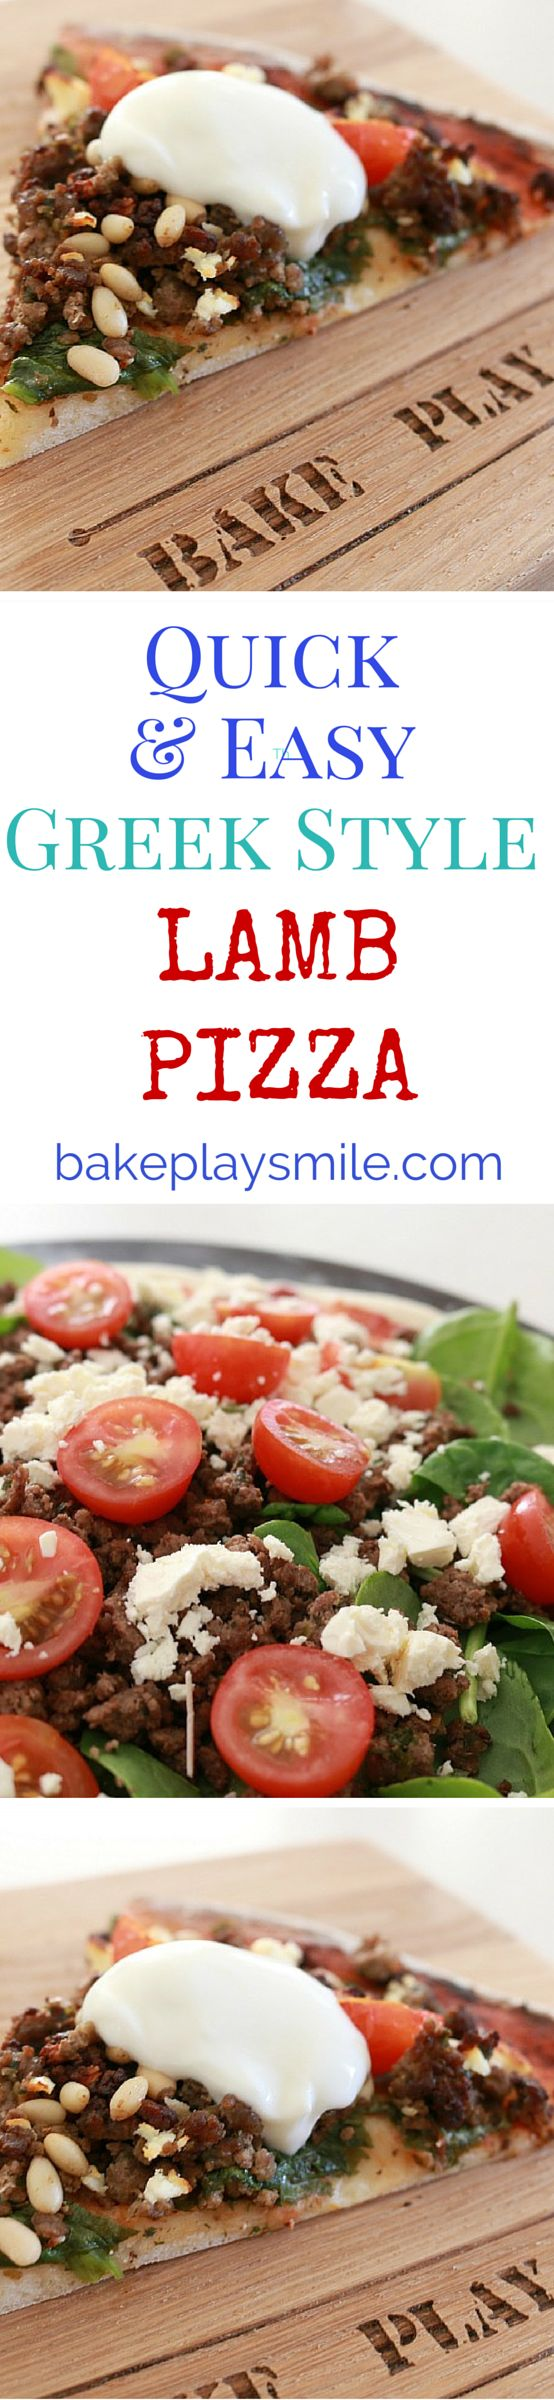 Greek Lamb Pizza made with lamb mince, feta cheese, cherry tomatoes, baby spinach, pine nuts and a yoghurt sauce.